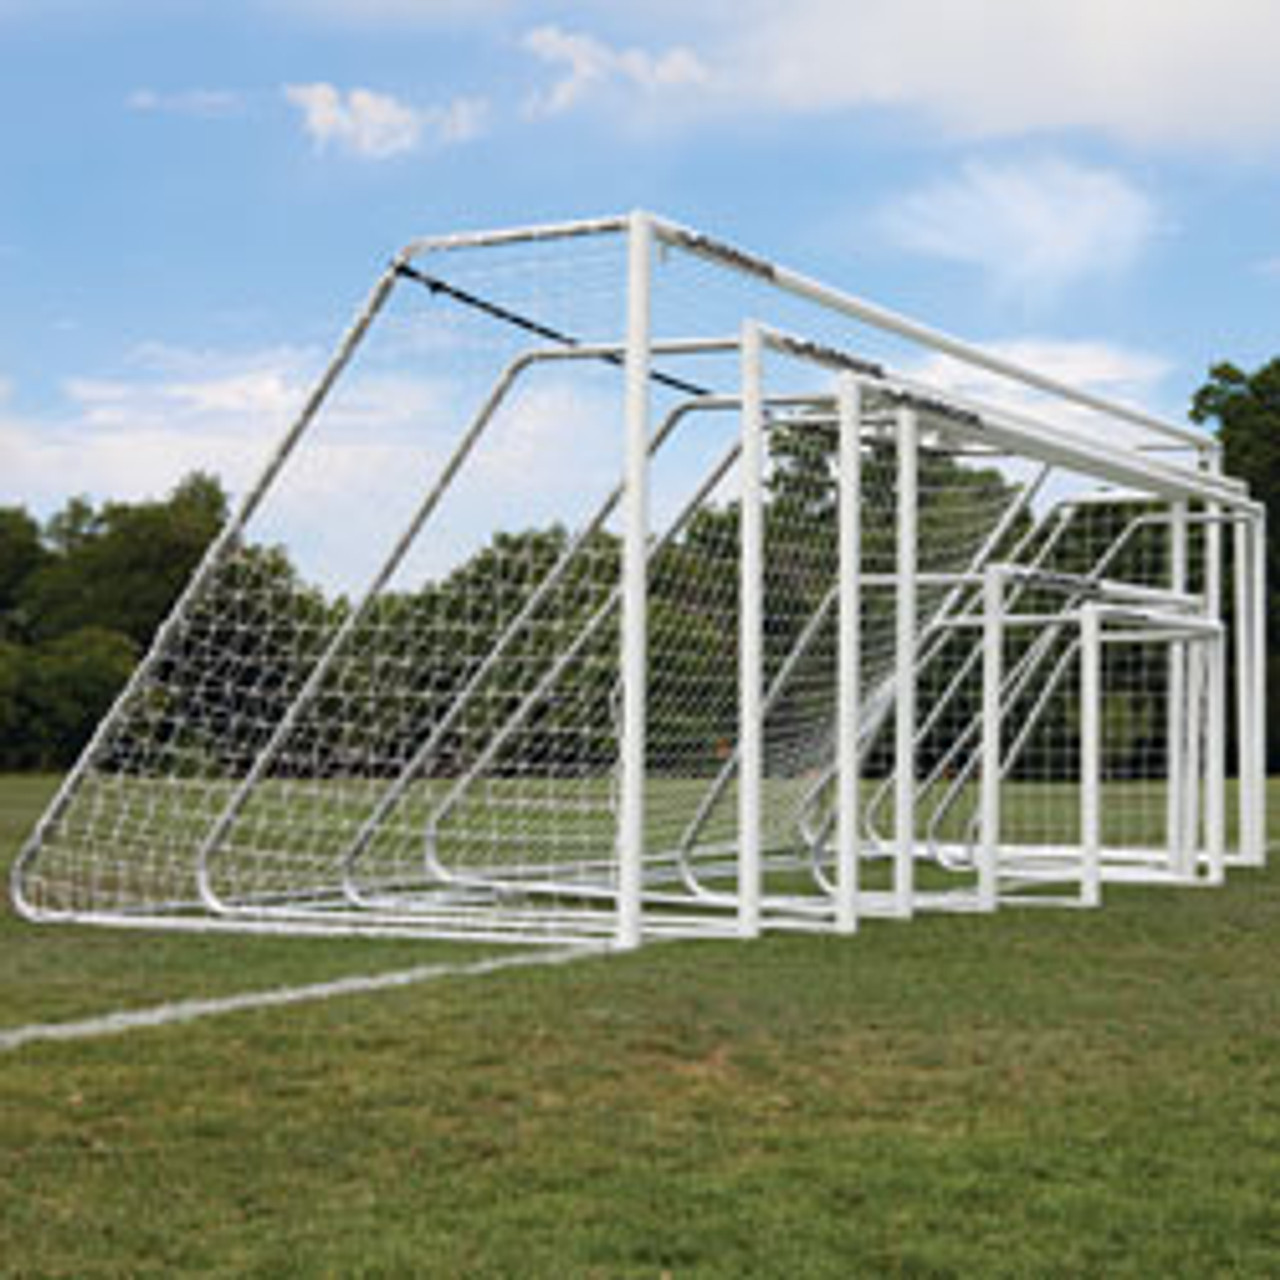 "Alumagoal Soccer Goals 3"" Round White Powder Coated 7x21'"